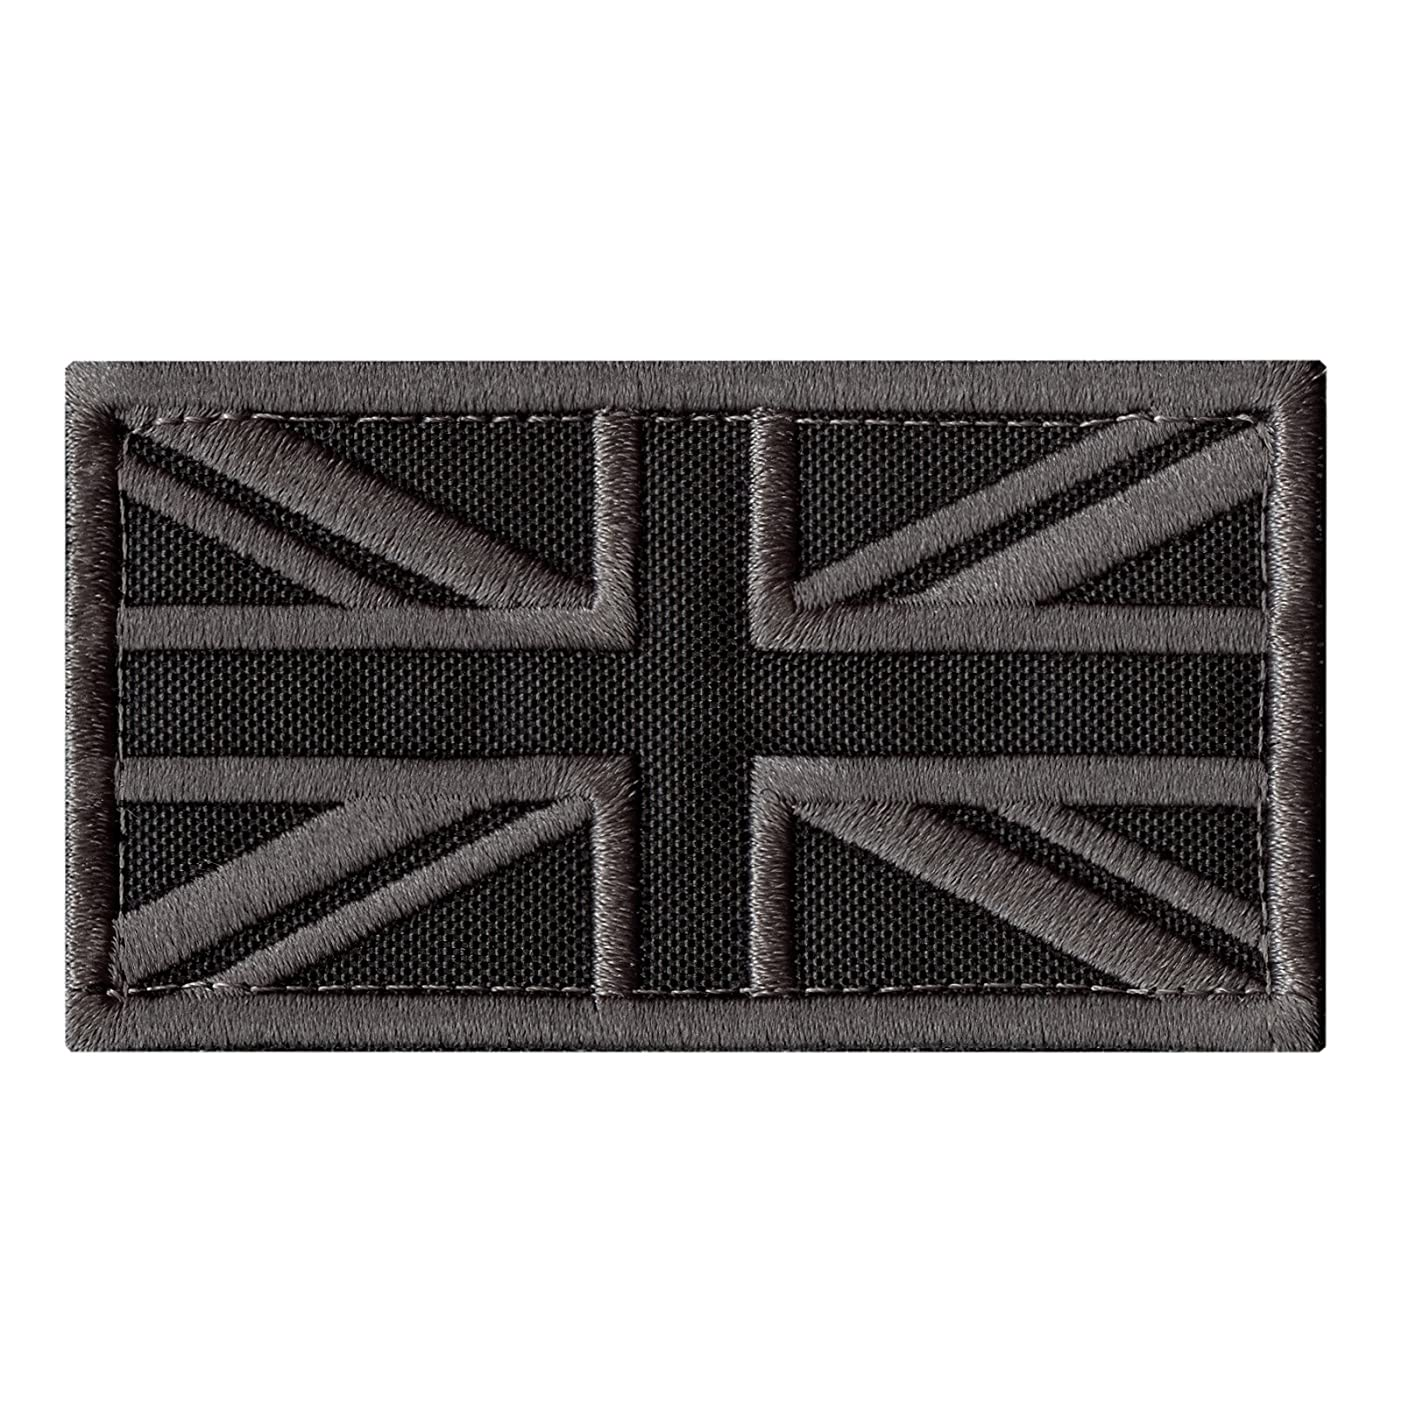 LEGEEON ACU Great Britain UK Union Jack Flag Subdued Morale Tactical Badge Army Embroidery Sew Iron on Patch